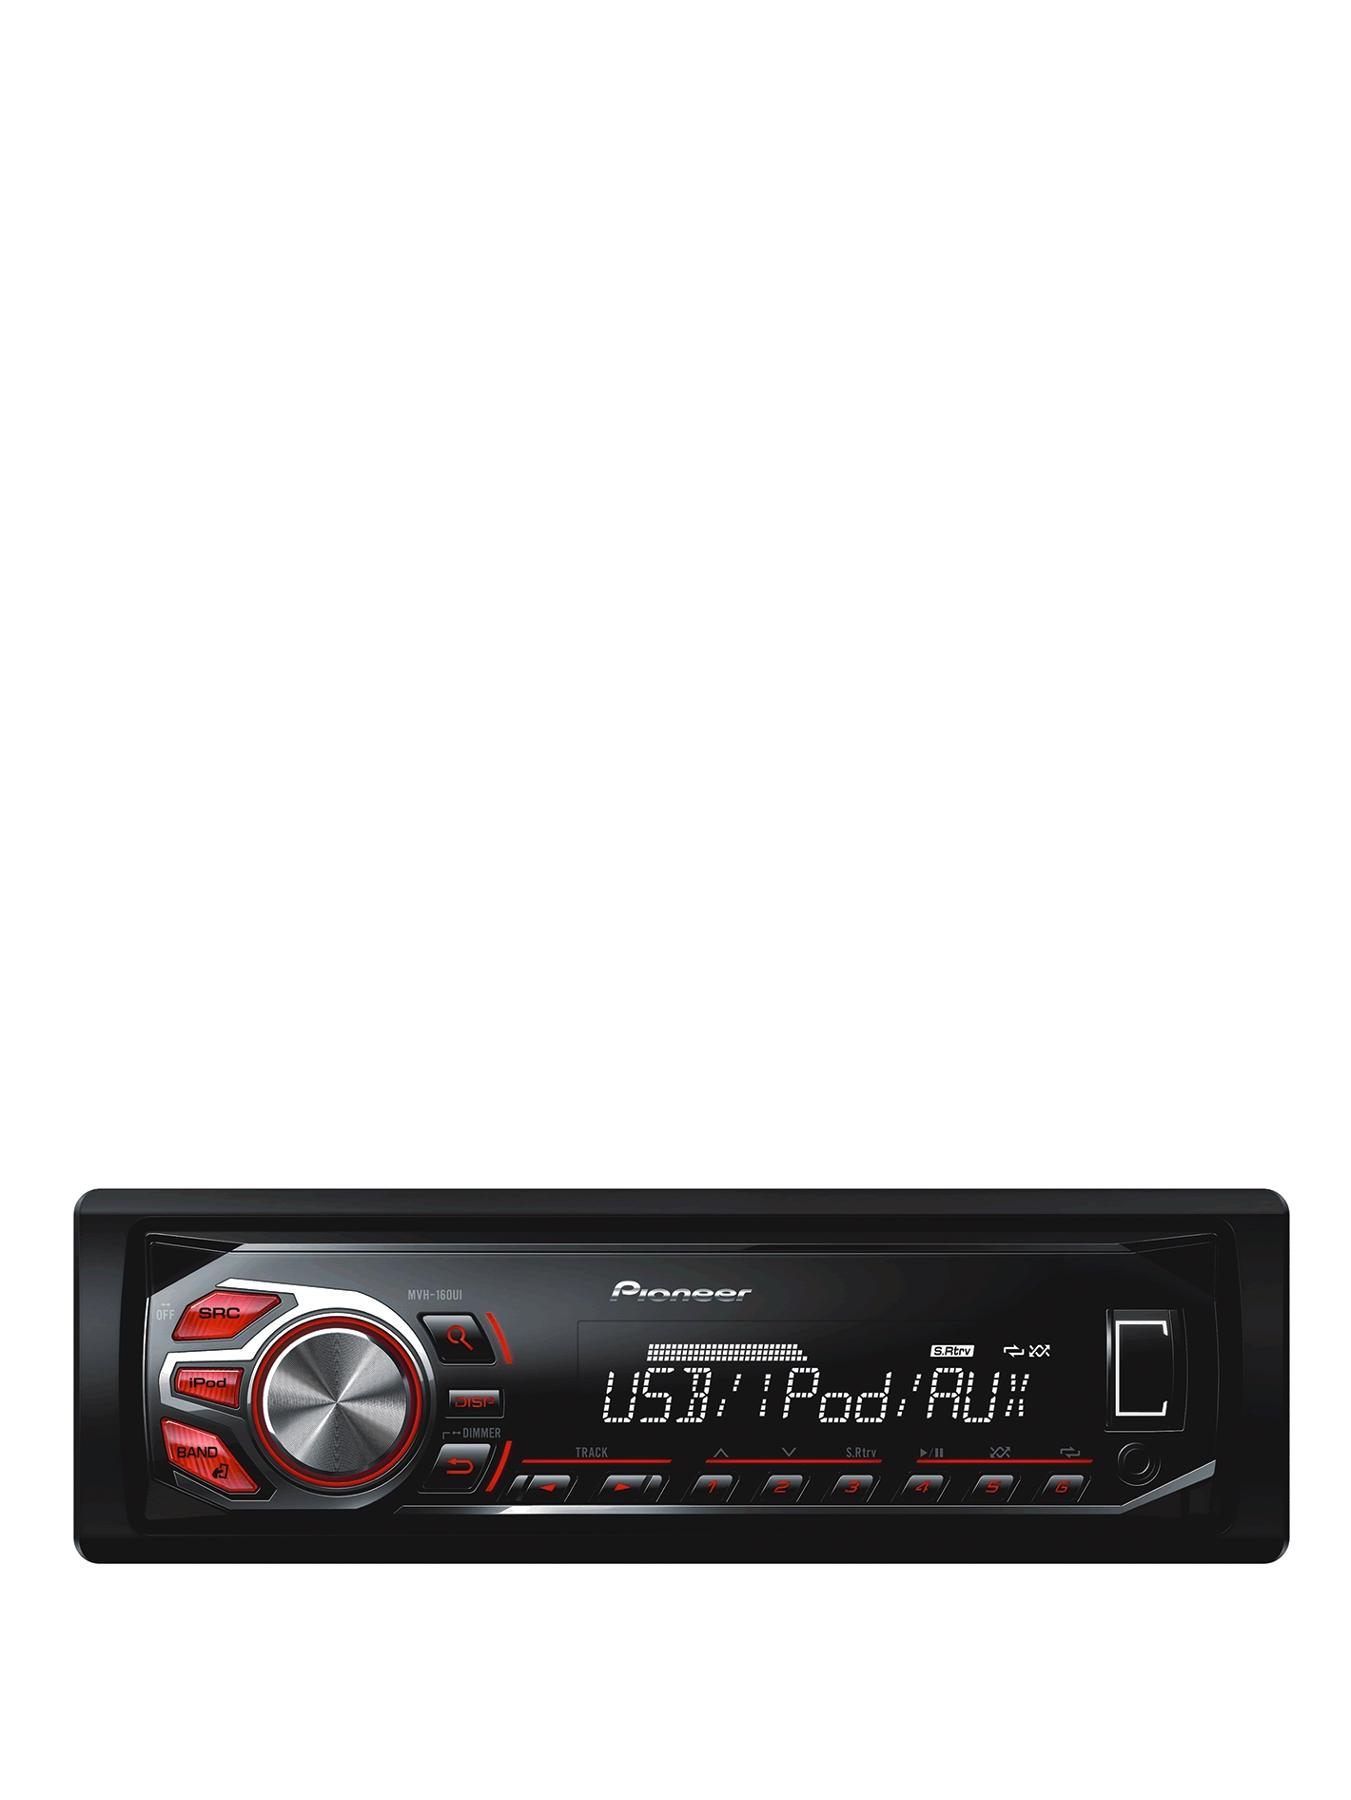 IC (MECH-FREE) FM/AM Tuner USB iPod/iPHONE Control Red and White Display MVH-160Ui